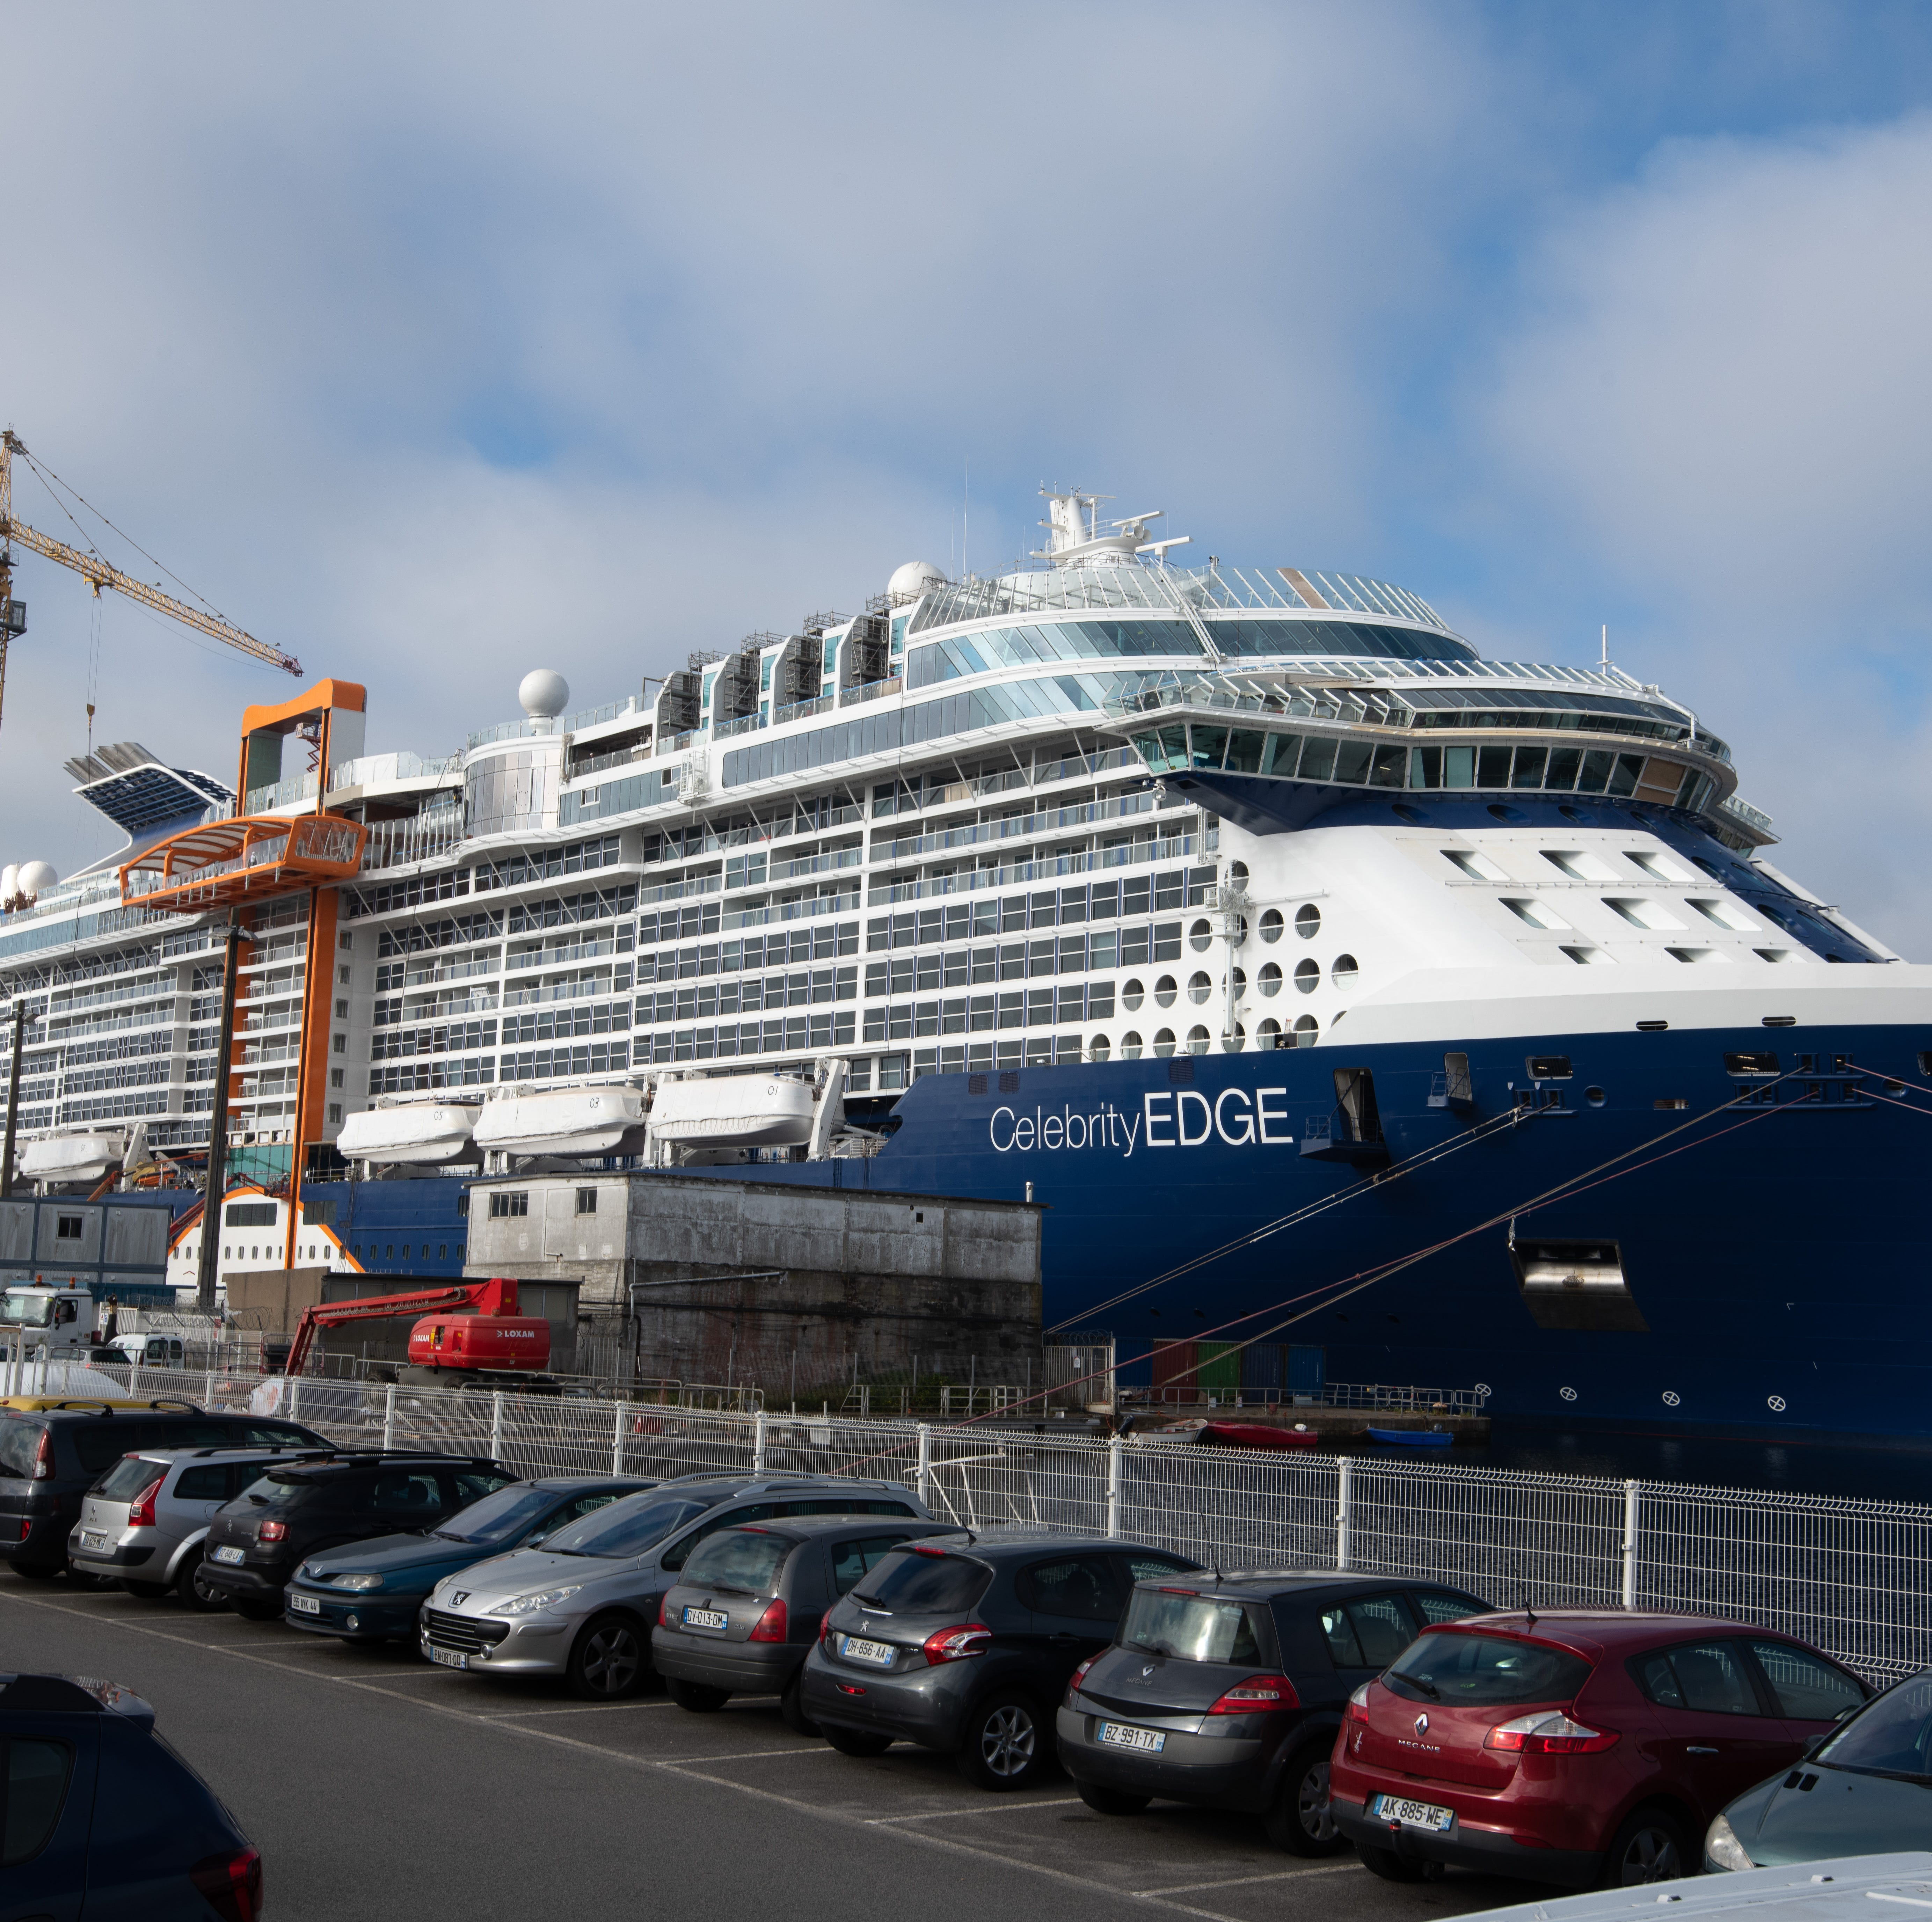 Celebrity Cruises will debut its first new ship in six years in November. Shown here under construction at the Chantiers de l'Atlantique shipyard in France, the 129,500-ton vessel will carry 2,918 passengers at double occupancy and be called Celebrity Edge.